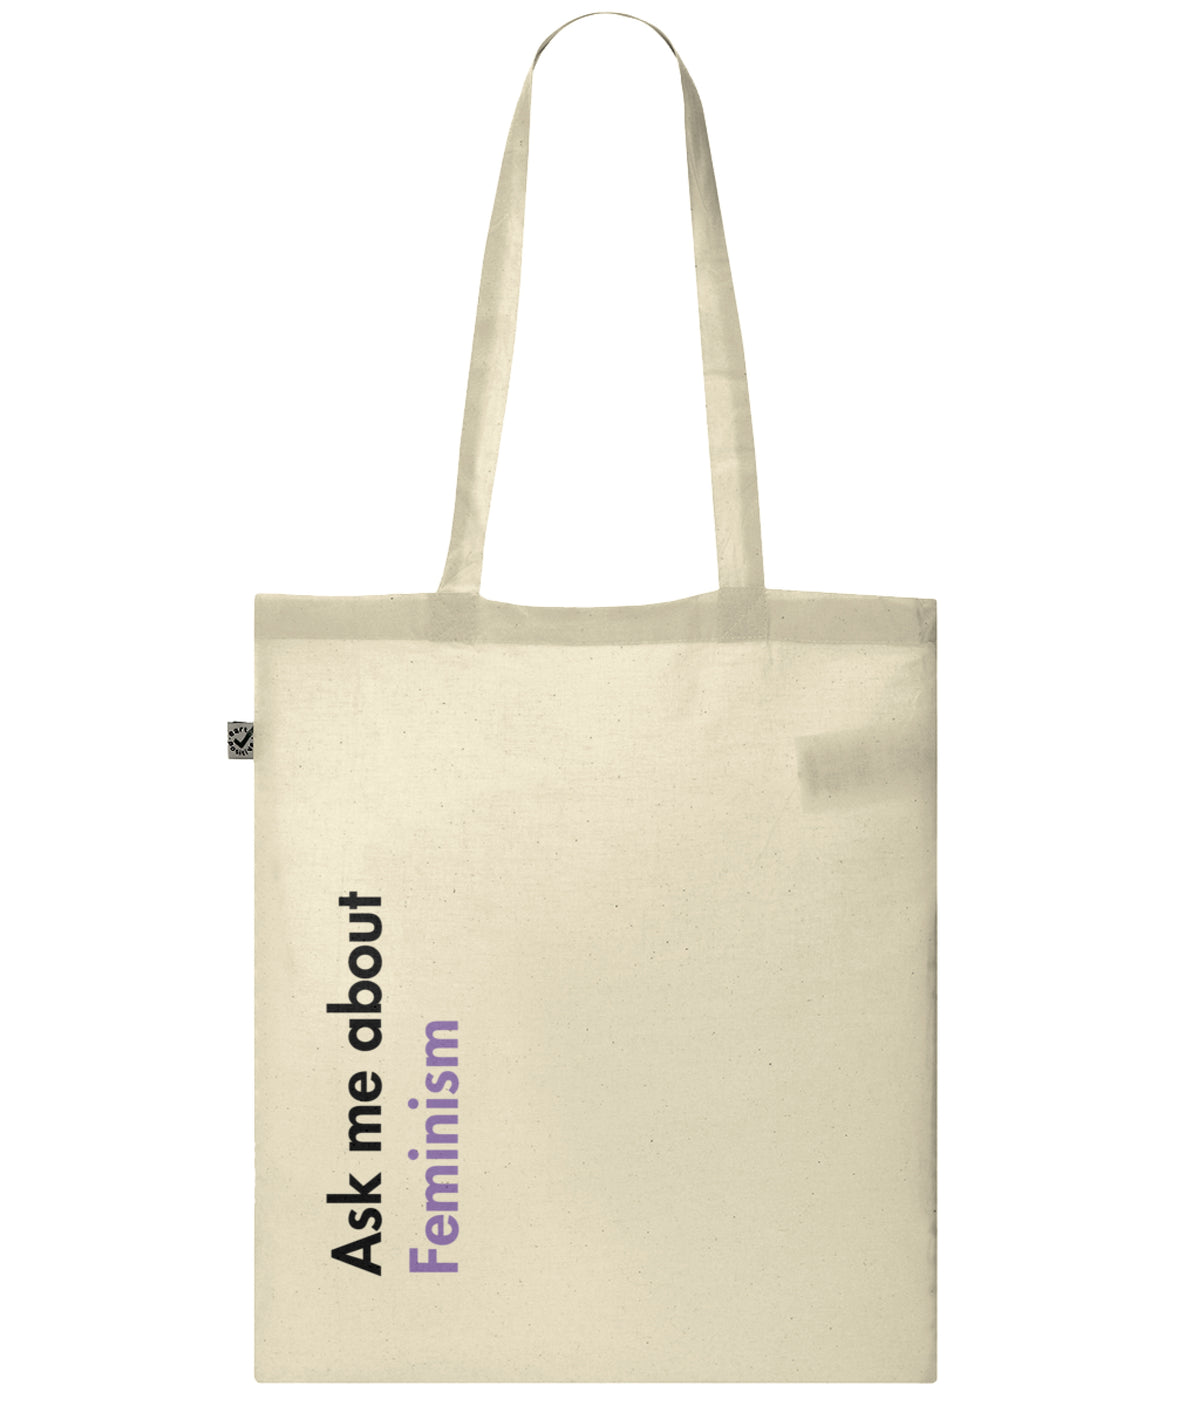 Ask Me About Feminism Organic Combed Cotton Tote Bag Natural